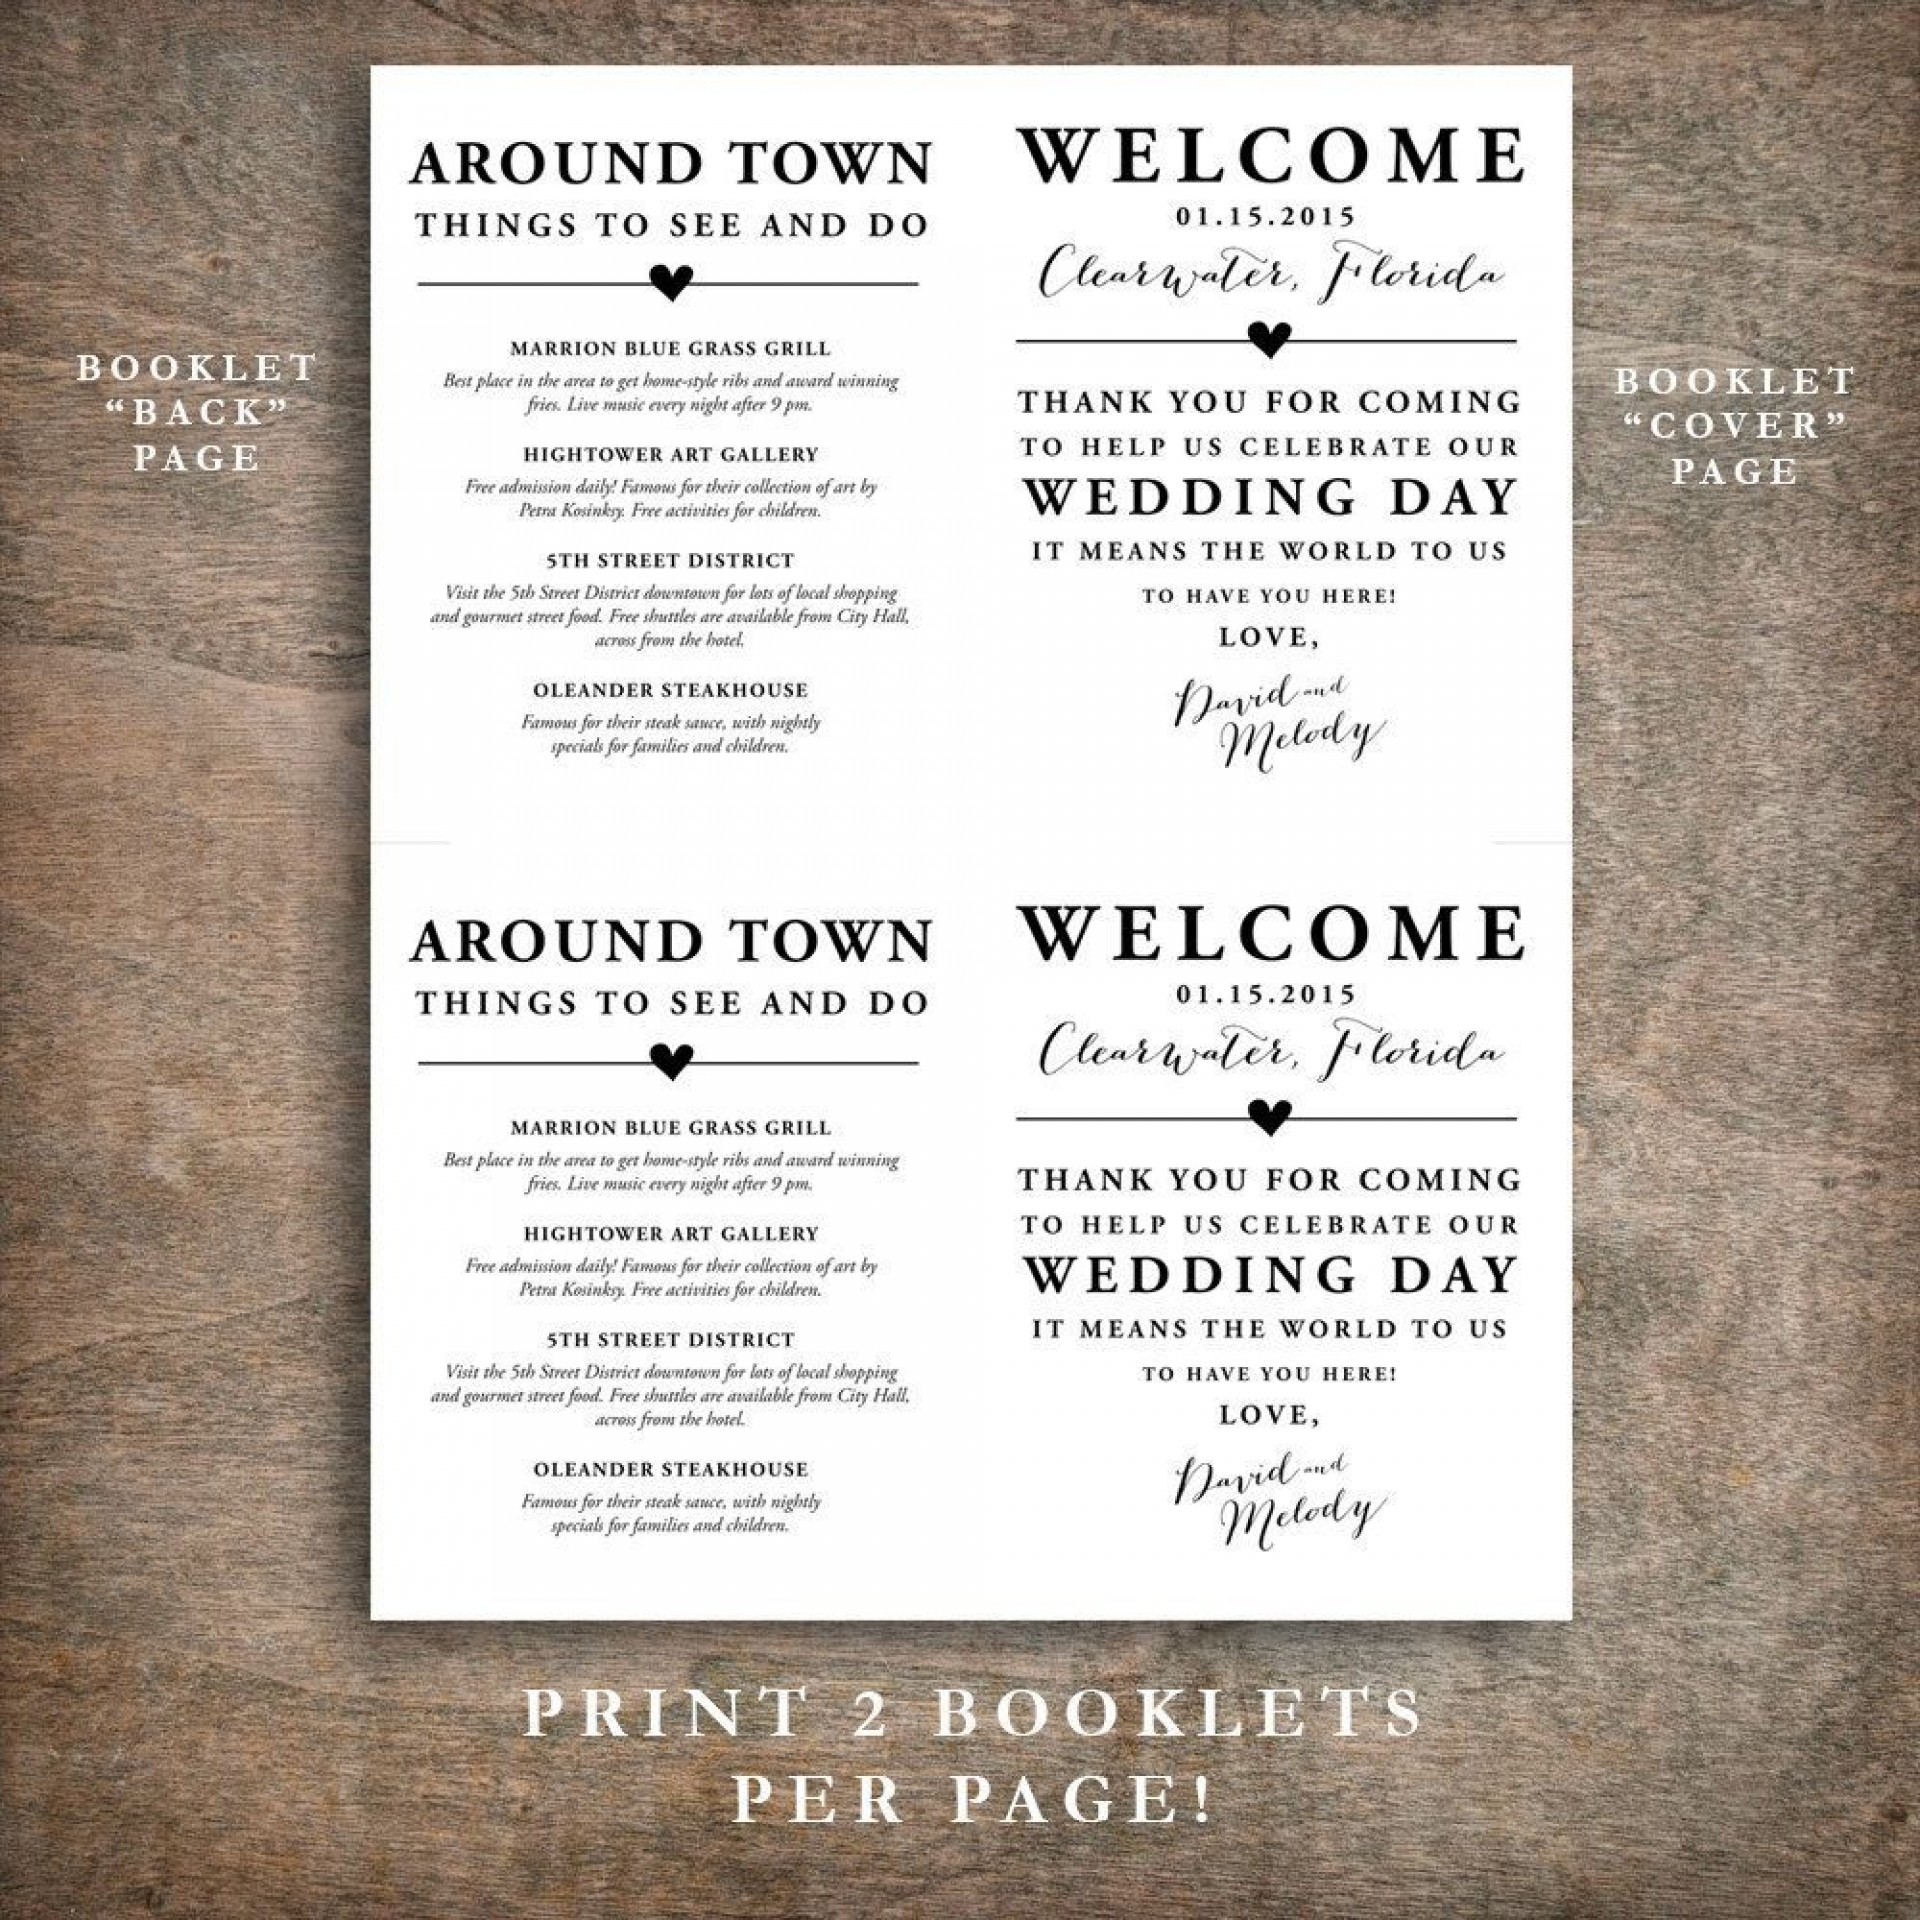 000 Wondrou Wedding Welcome Bag Letter Template Free Example 1920